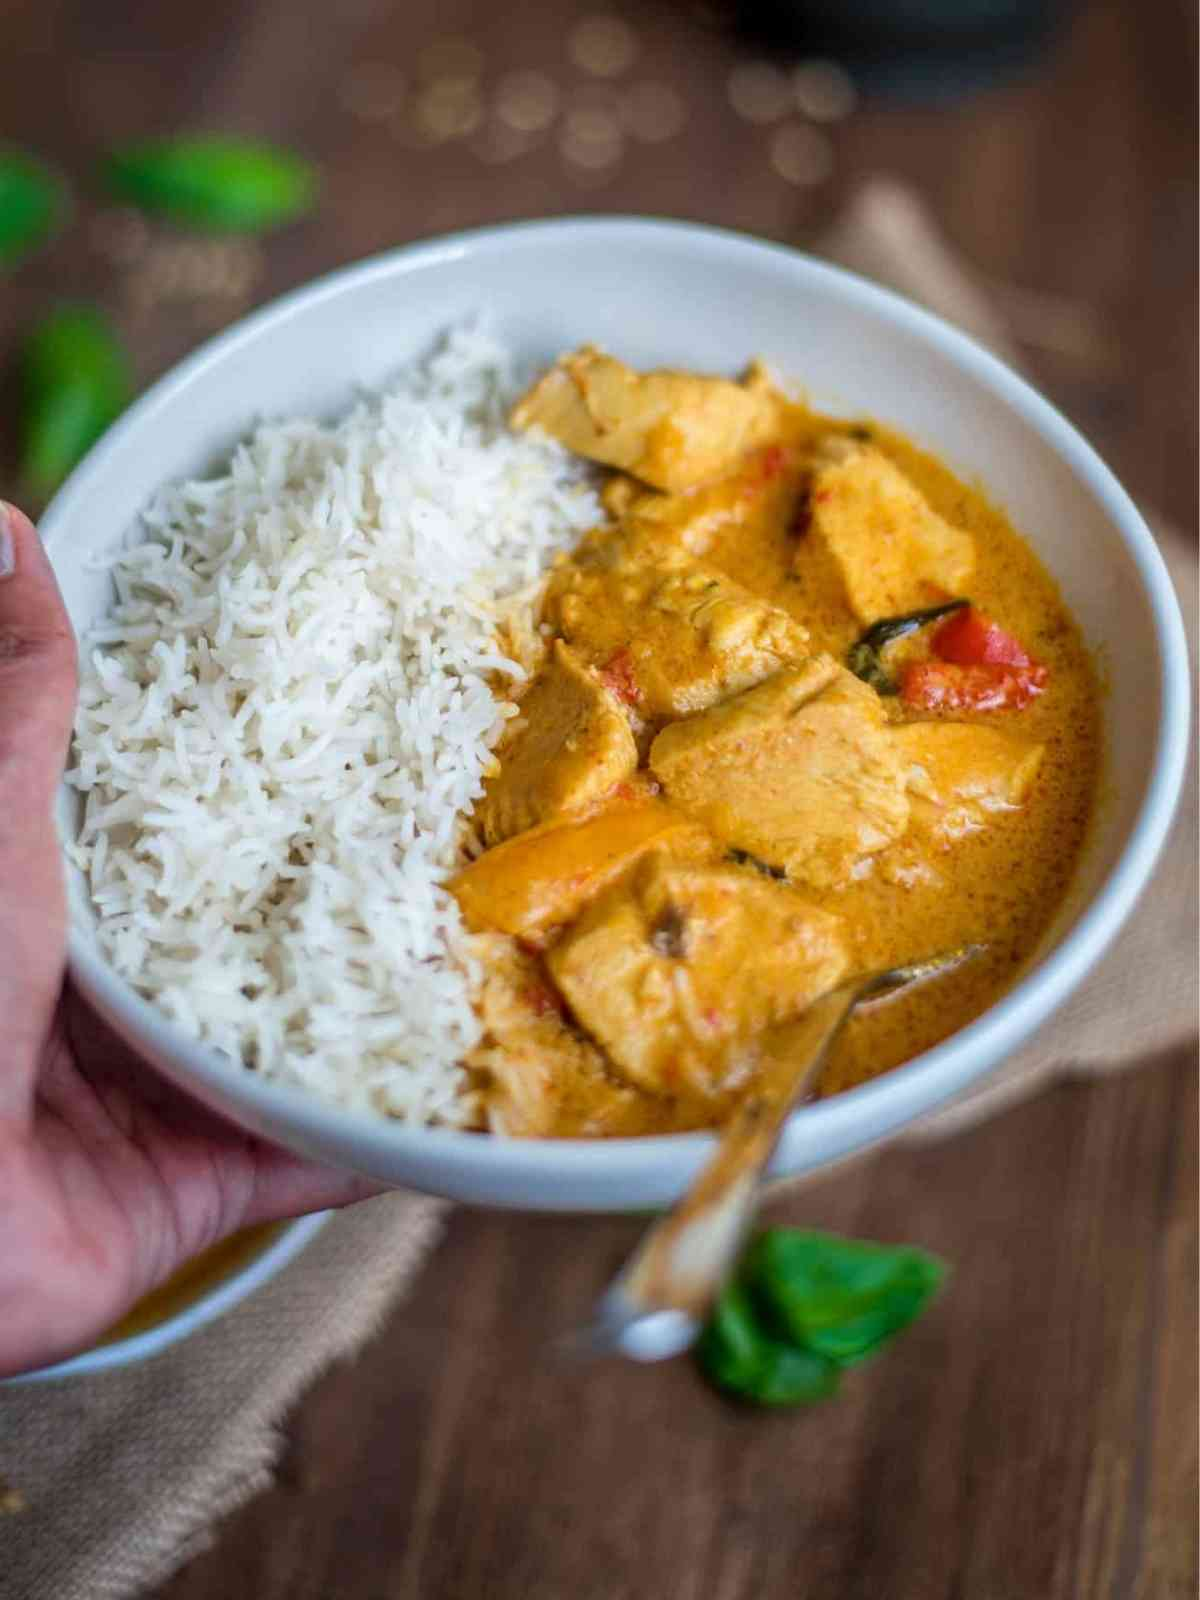 A bowl of Thai chicken curry and rice held in the hand